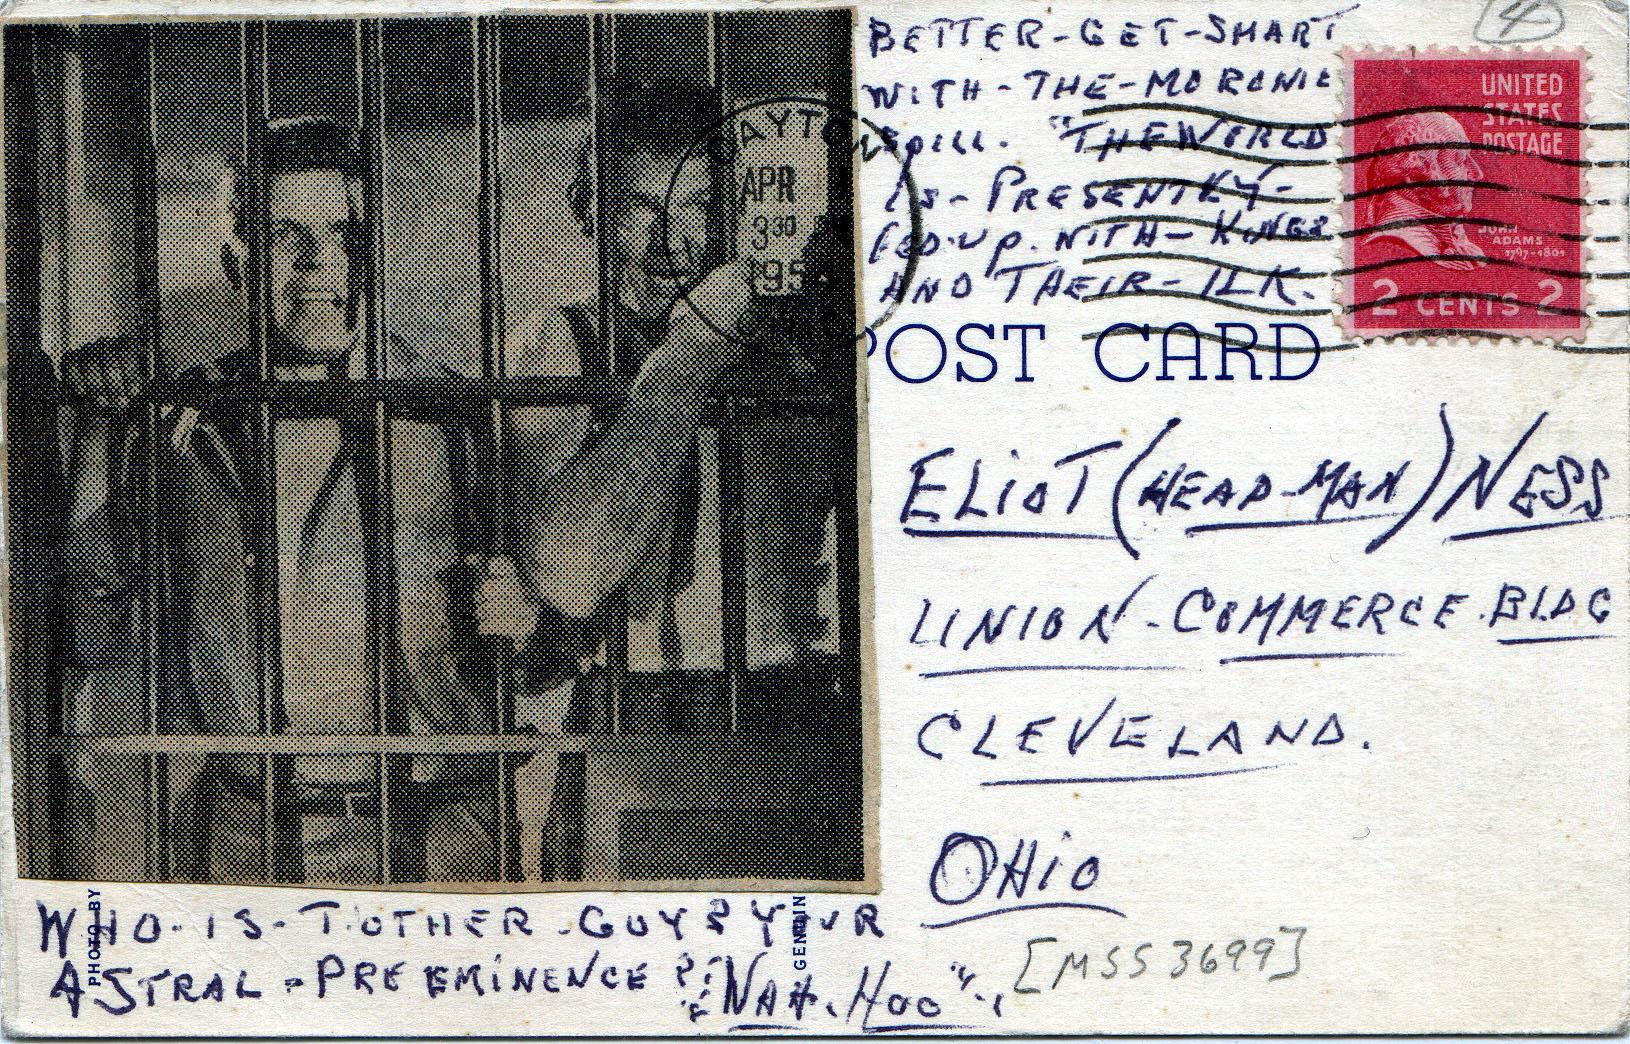 Postcard (5 of 5) sent to Eliot Ness in 1954 by an asylum inmate believed by some to have been the torso murderer.